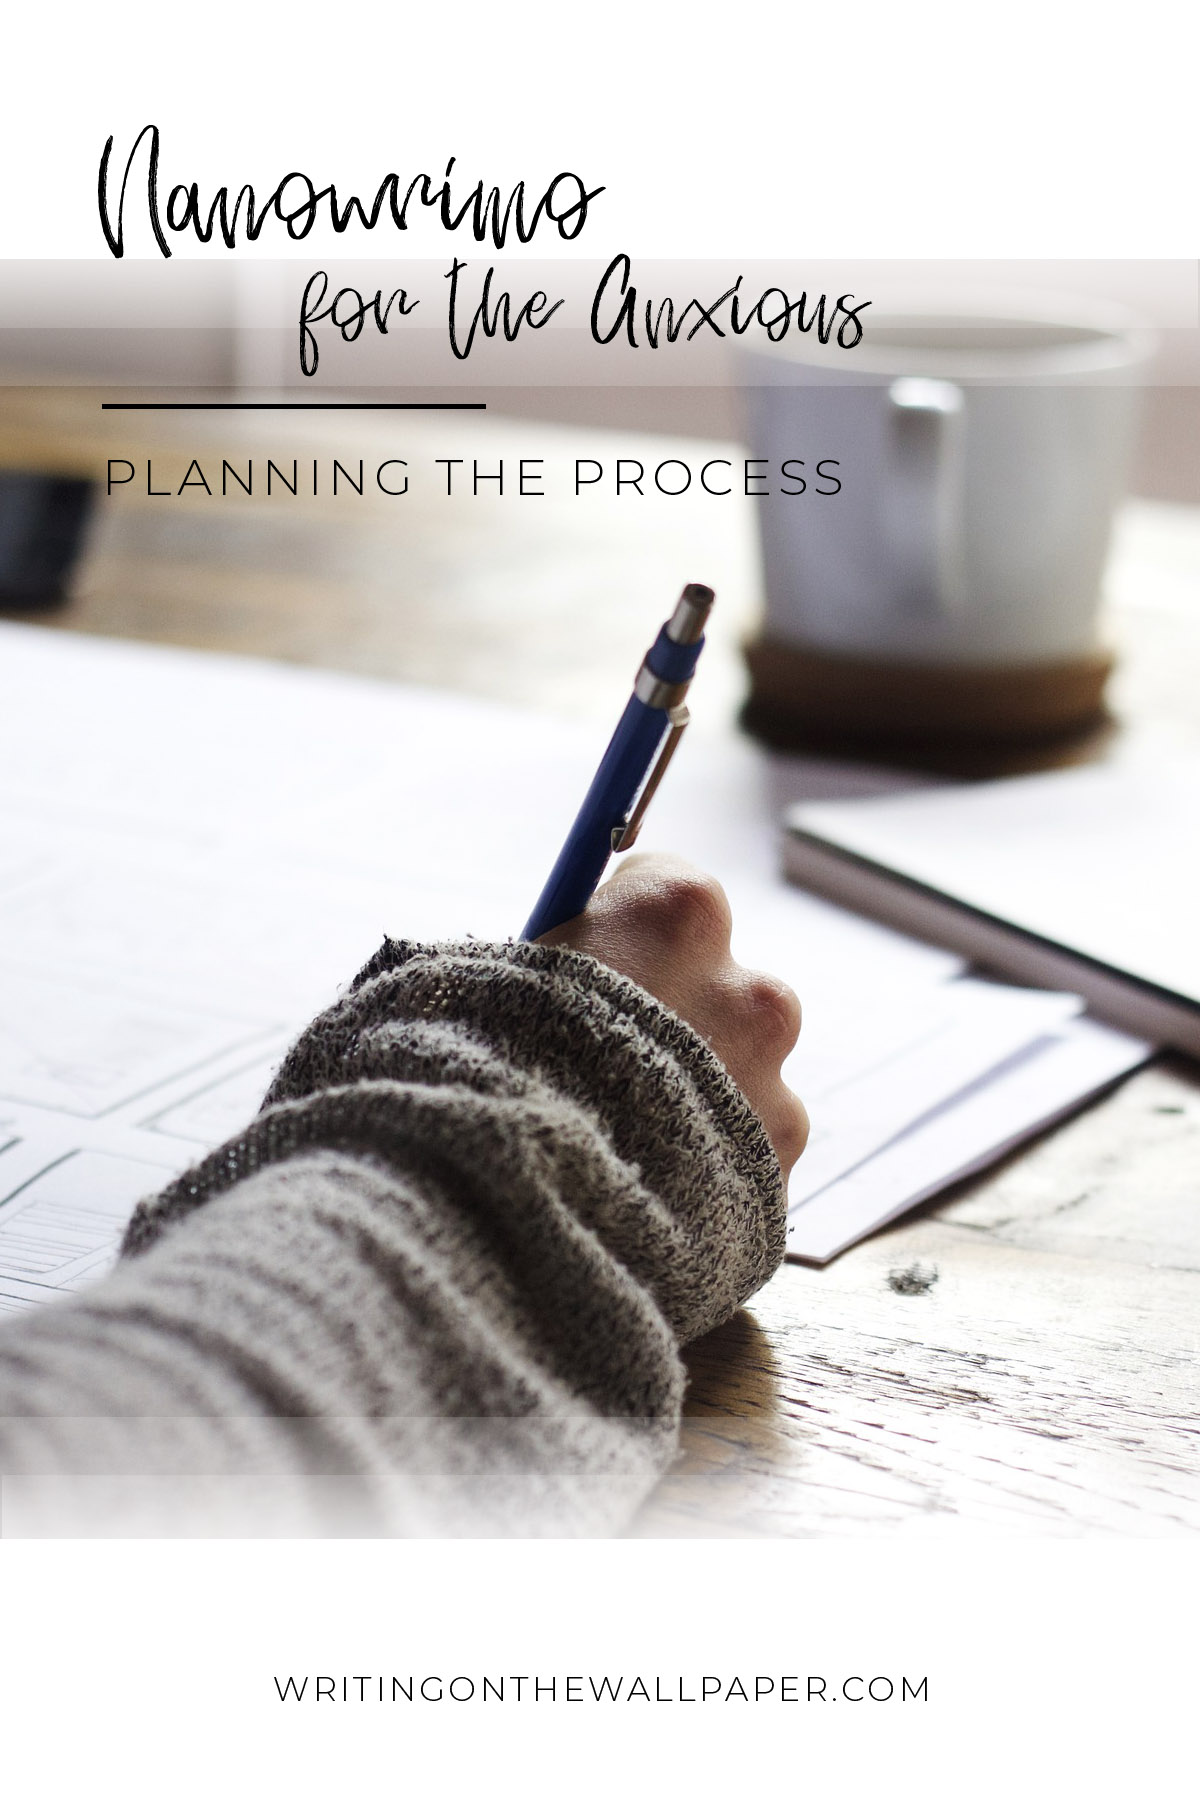 Title - Planning the Process